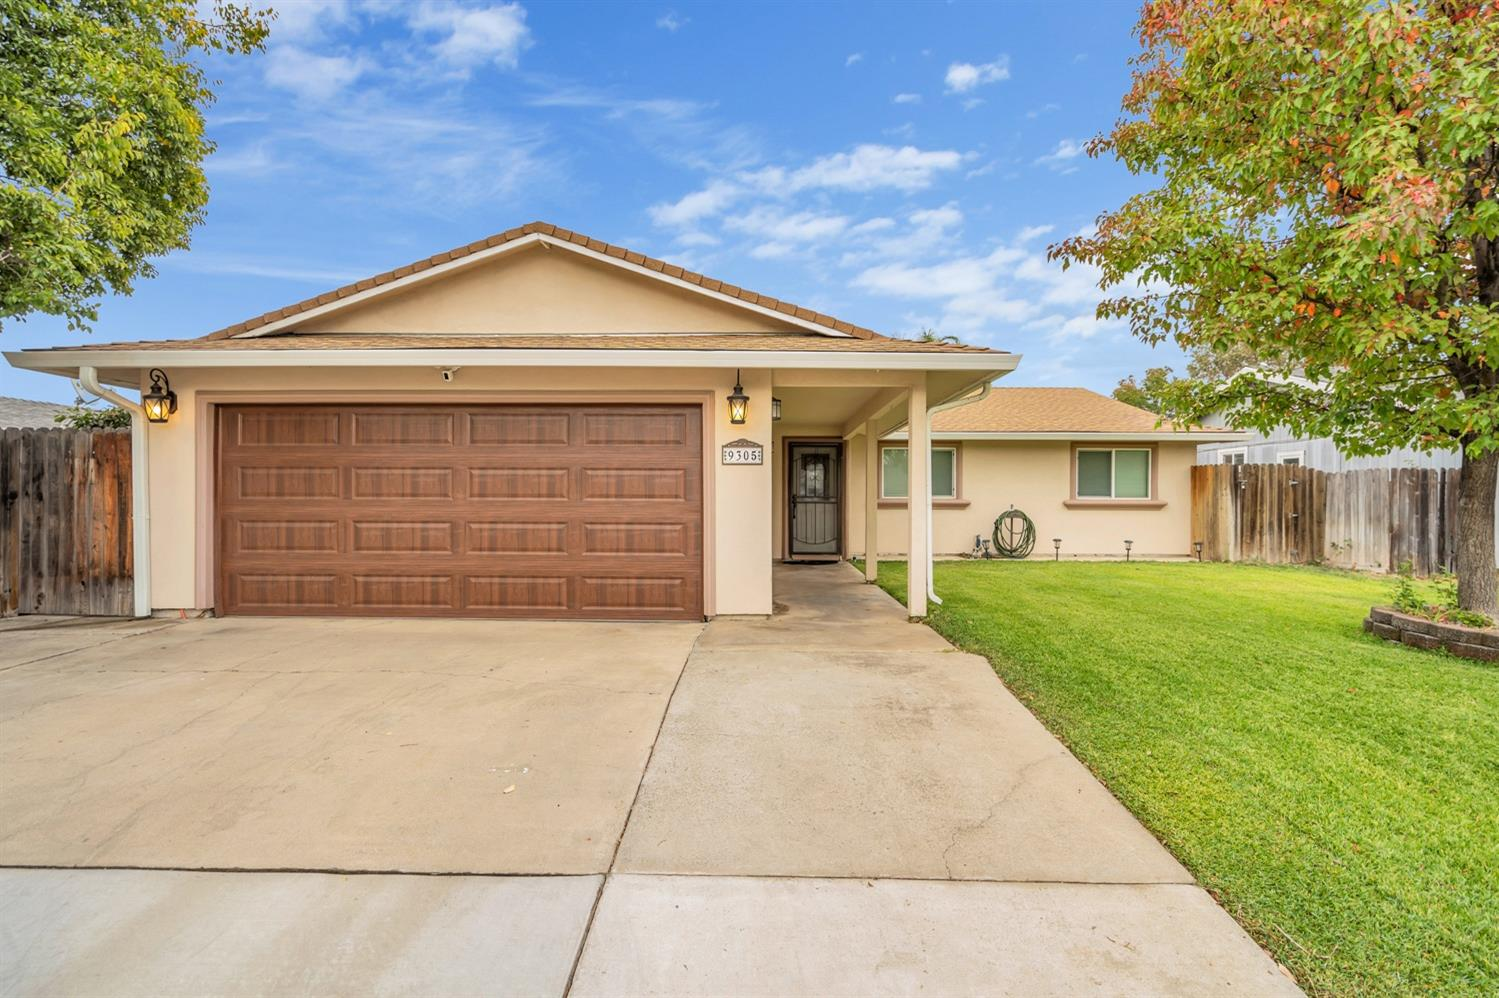 Take a look at this fantastic 3 bedroom single story home with so much to offer. Inside you'll find